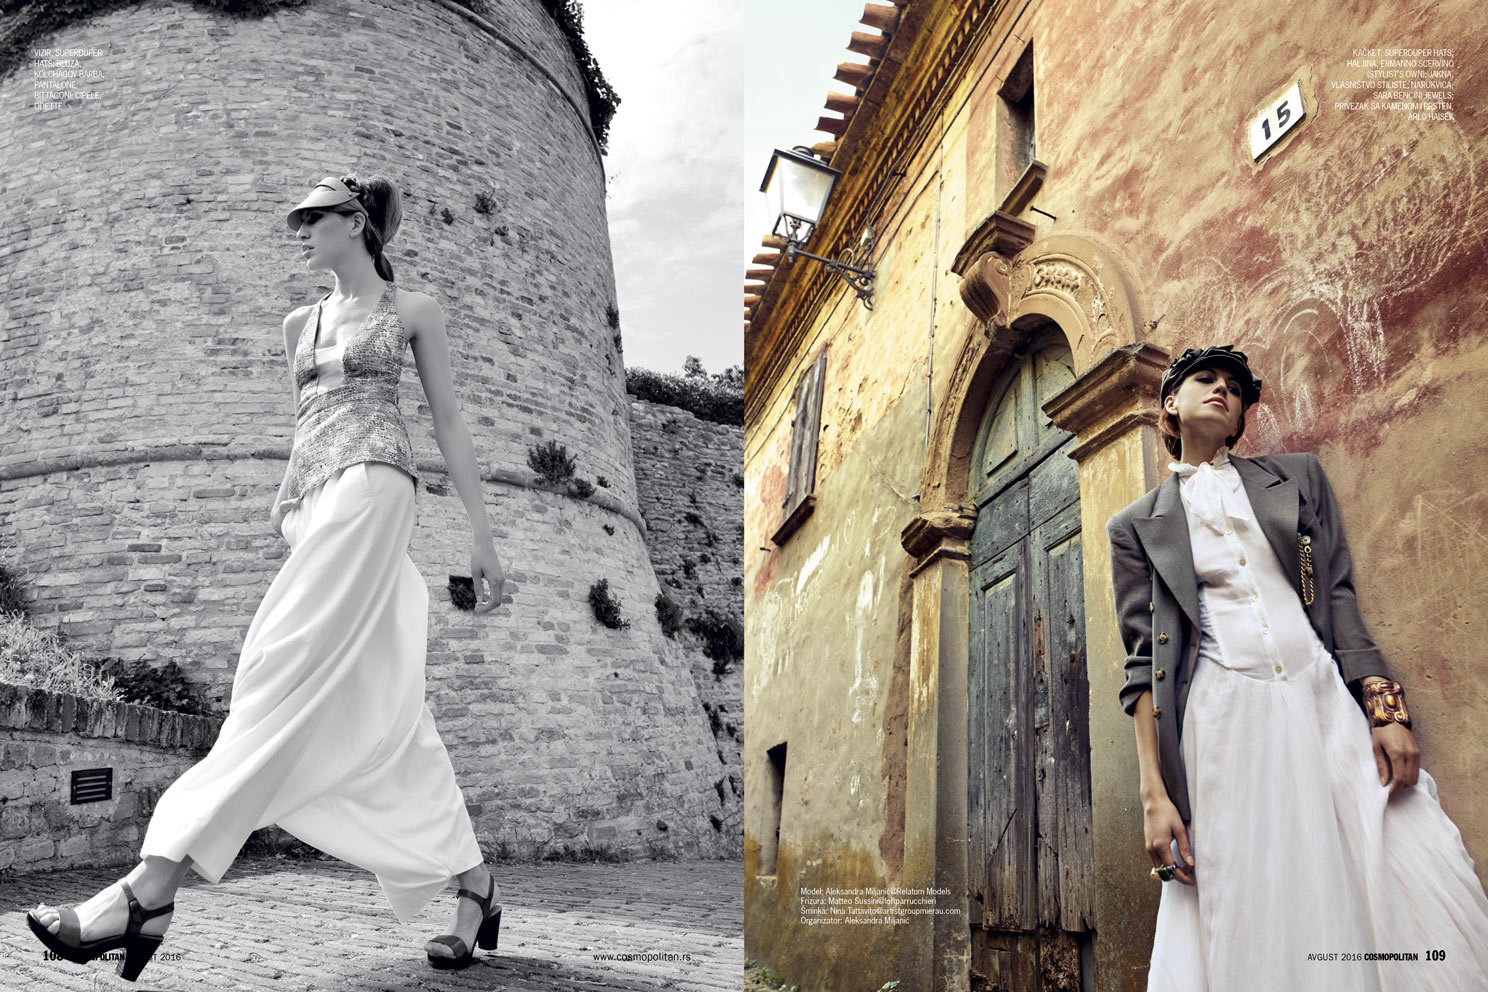 Left: Top KOLCHAGOV BARBA, Trousers 8TTAGONI, Visor SUPER DUPER HATS, Shoes ODETTE Right: Dress ERMANNO SCERVINO (stylist's own), Jacket VINTAGE 80s STYLIST'S ARCHIVE, Jewels ARLO HAISEK, Bracelet SARA BENCINI JEWELS, Visor SUPER DUPER HATS